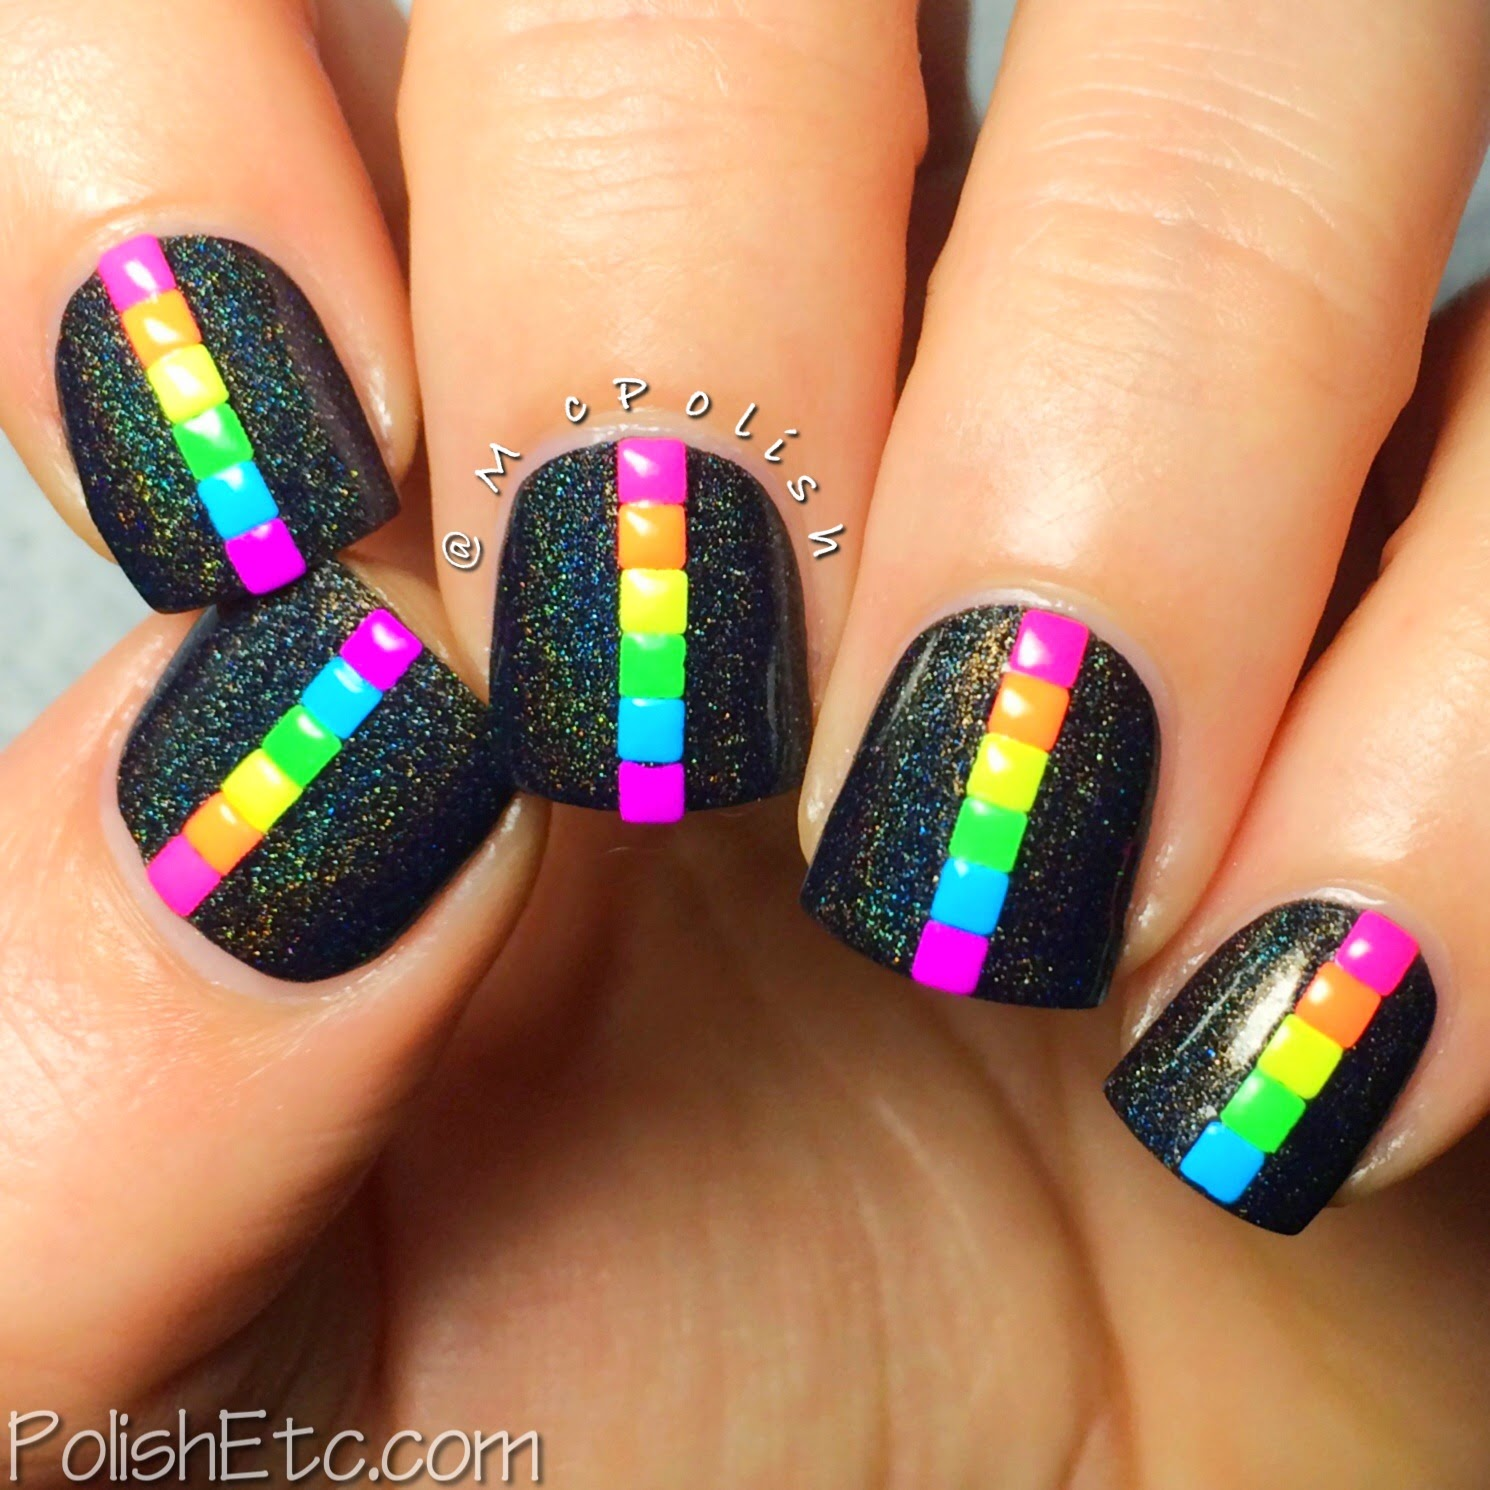 31 Day Nail Art Challenge - #31dc2014 - McPolish - RAINBOW